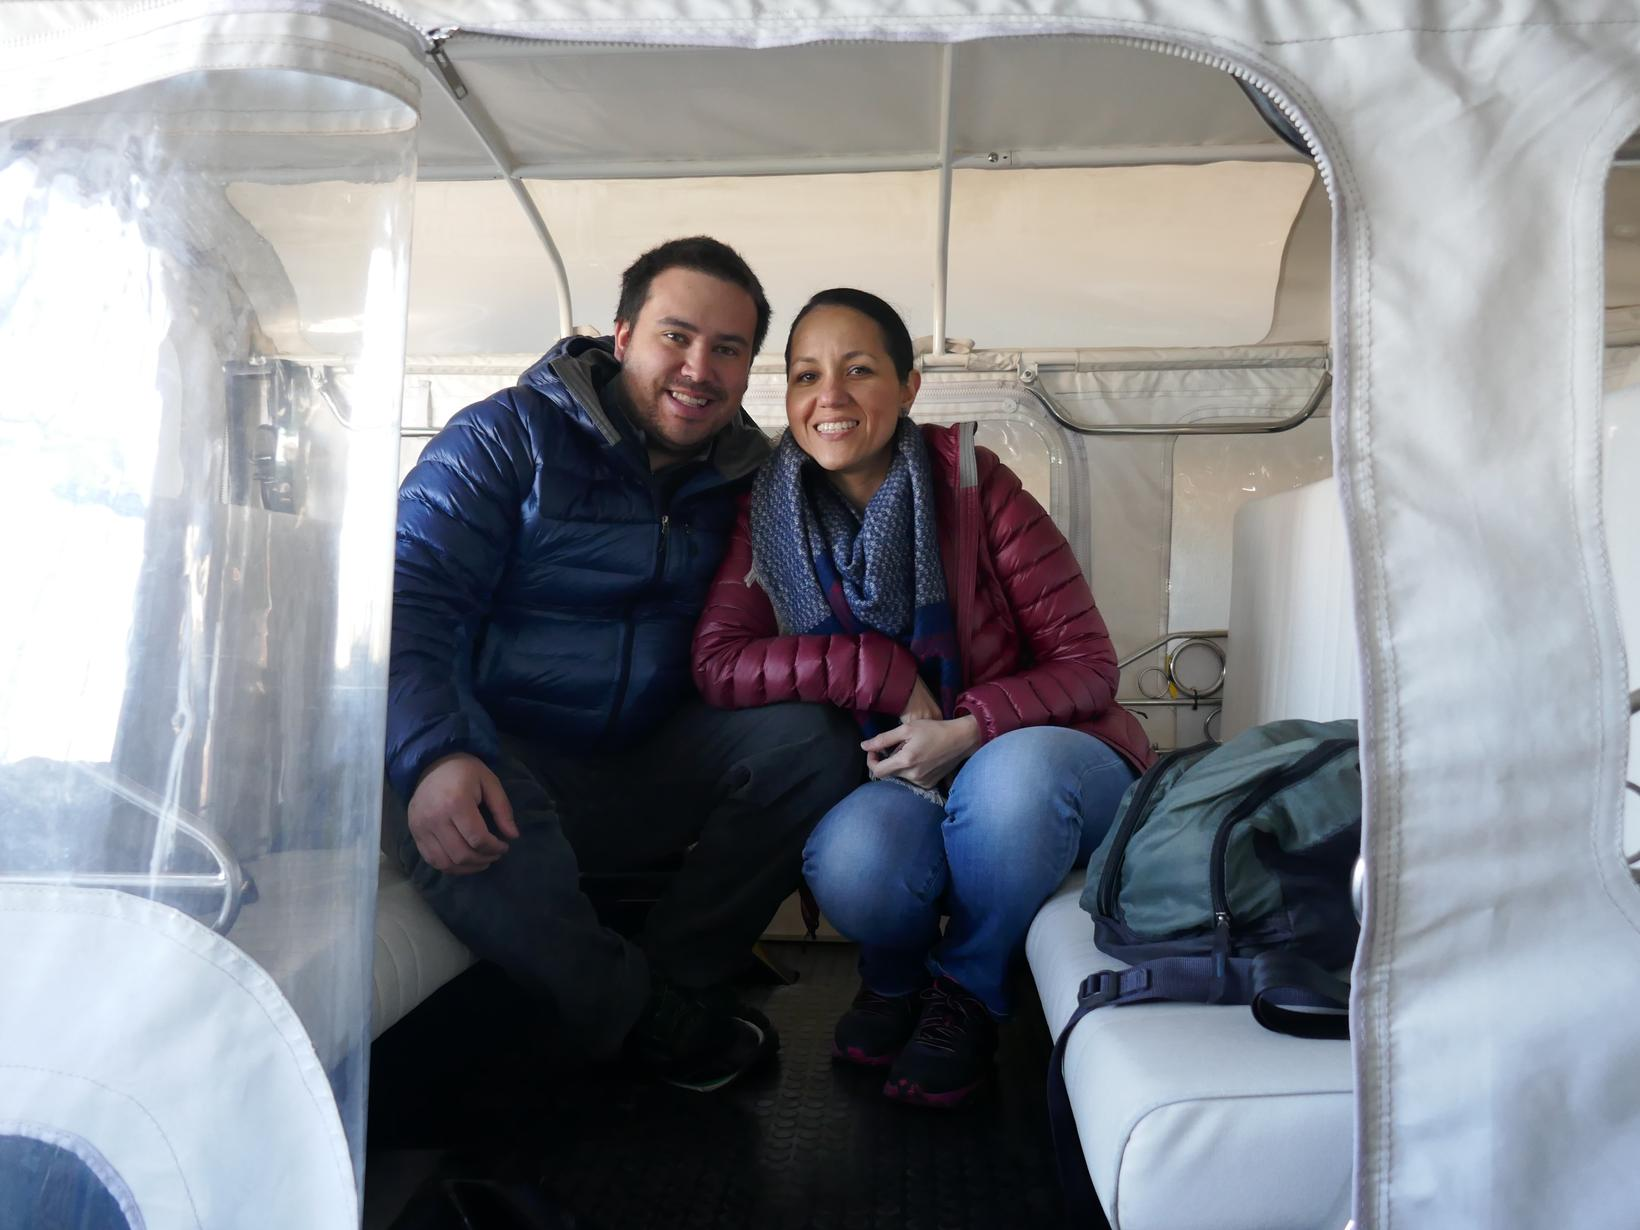 Janeth andrea & Alexander from Alexandria, Virginia, United States